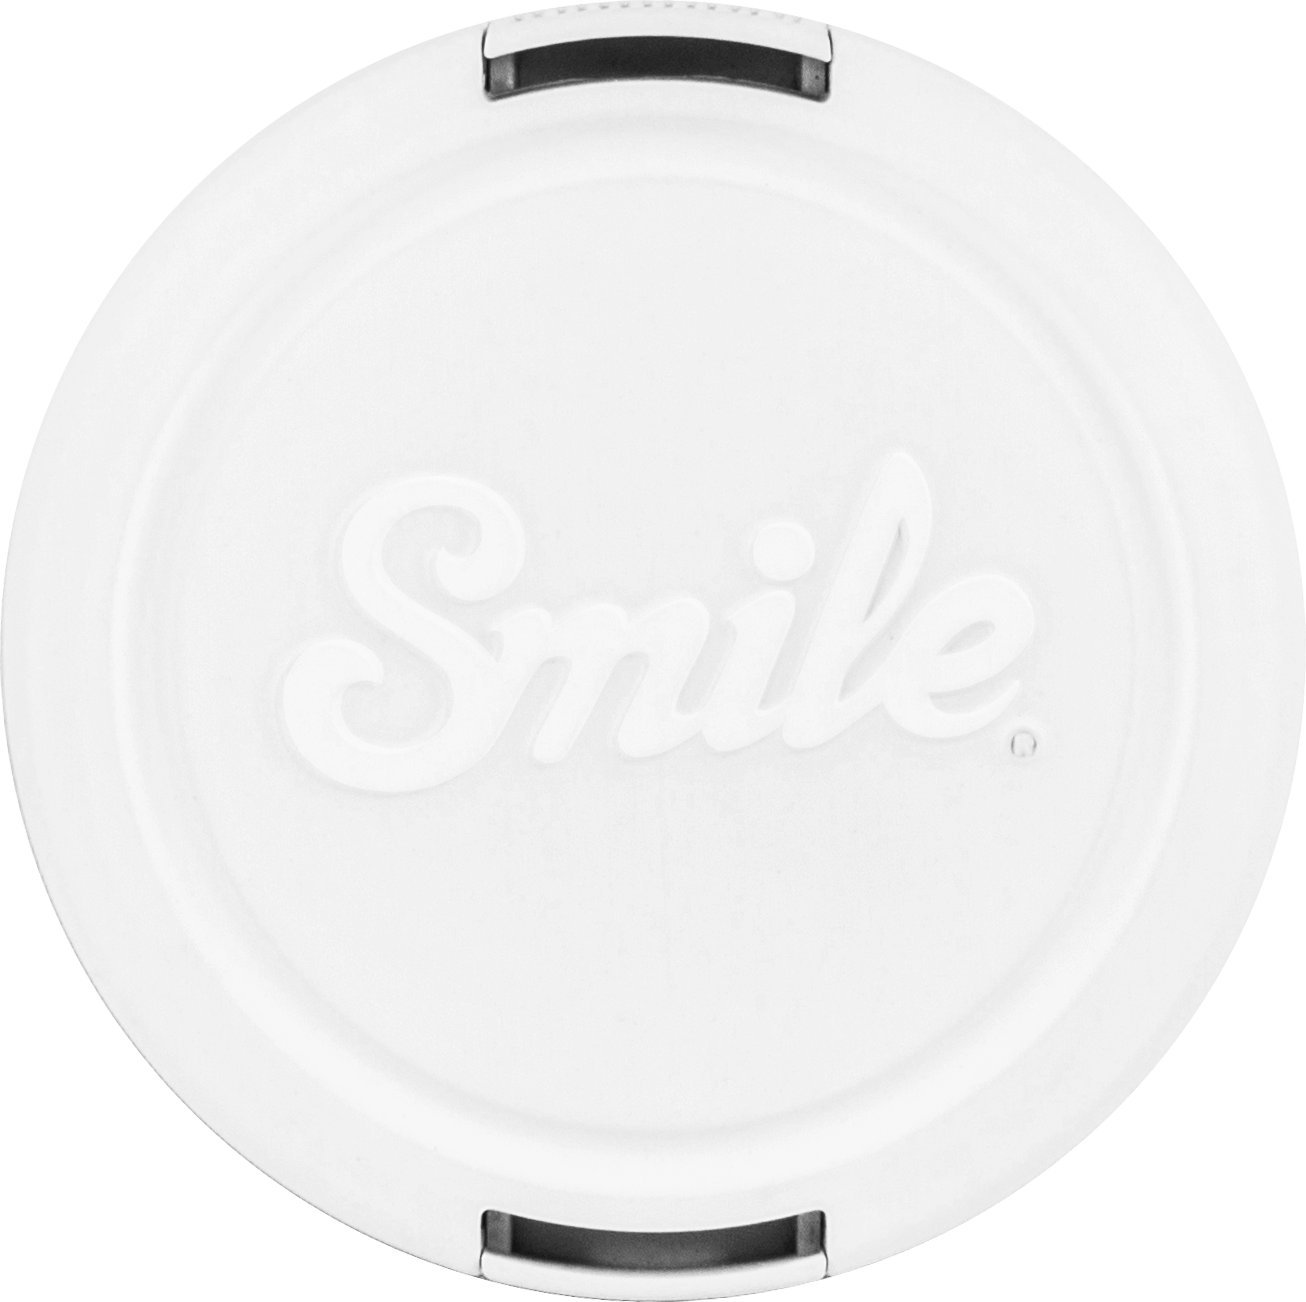 Smile 52mm Lens Cap (Moonlight)